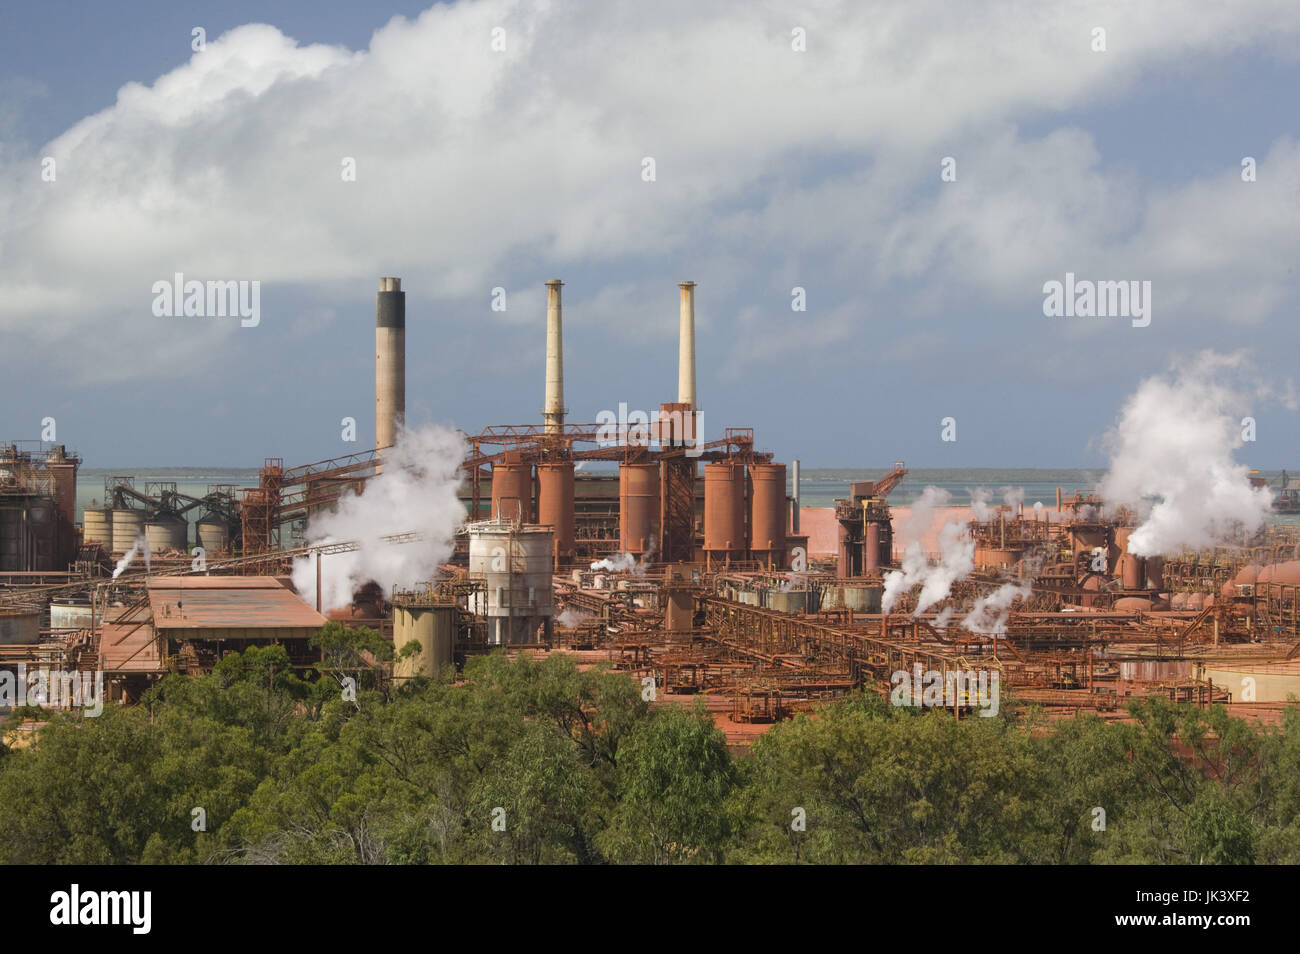 Australia, Queensland, Capricorn Coast, Gladstone, Queensland Alumina Limited, QAL, is the world's largest - Stock Image